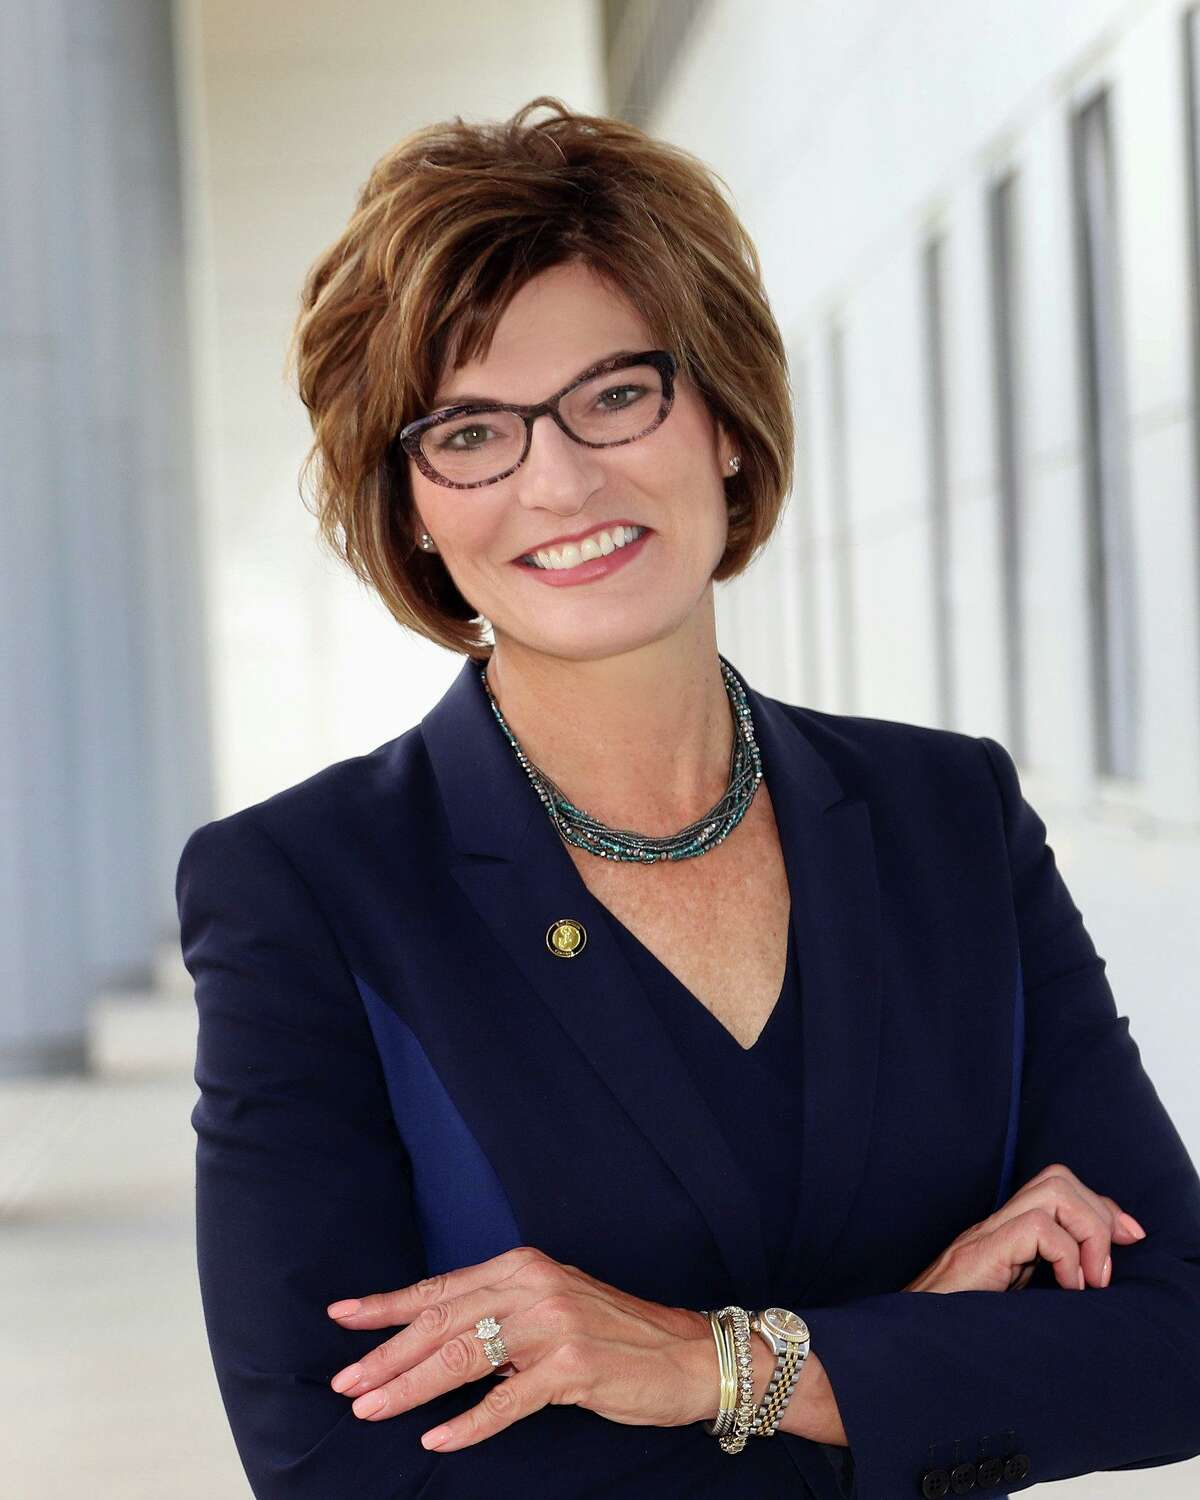 San Jacinto College Chancellor Brenda Hellyer says the college's plan to return to limited face-to-face classes is being done to help meet student needs.